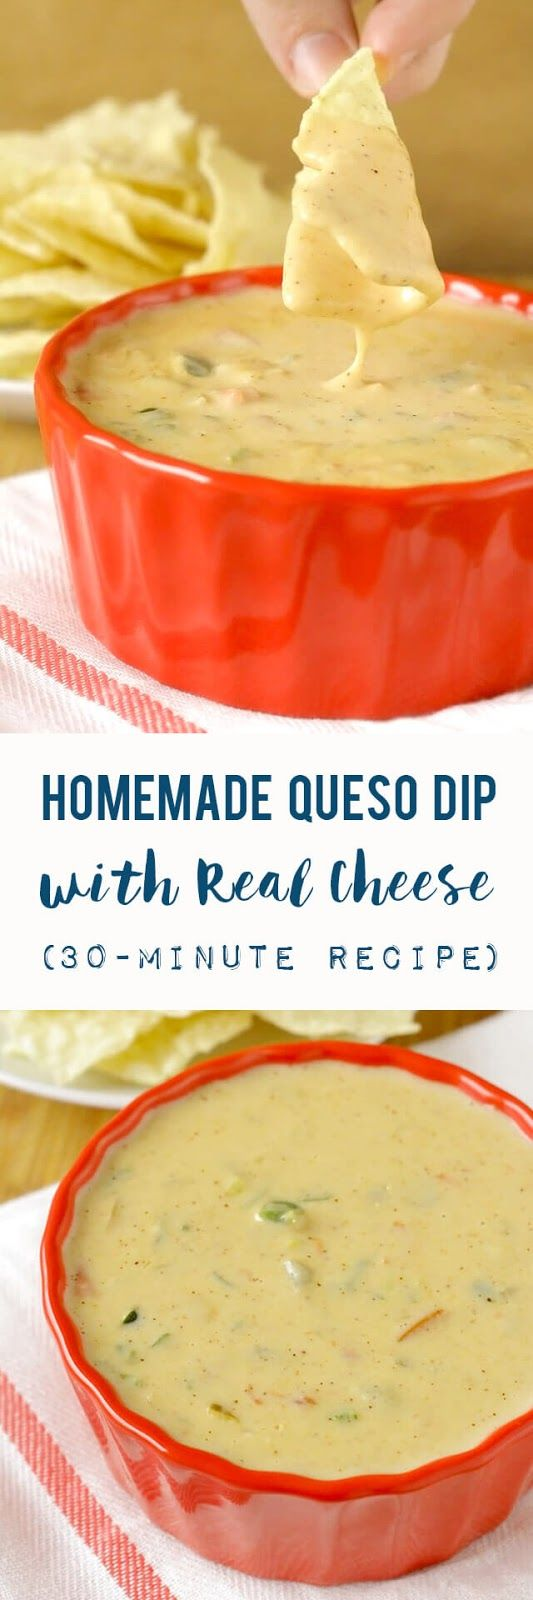 An easy homemade queso dip recipe made with three types of real cheese, onion, garlic, peppers, and spices in 30 minutes or less. Perfect for game day parties, holiday gatherings, or a relaxing night in!